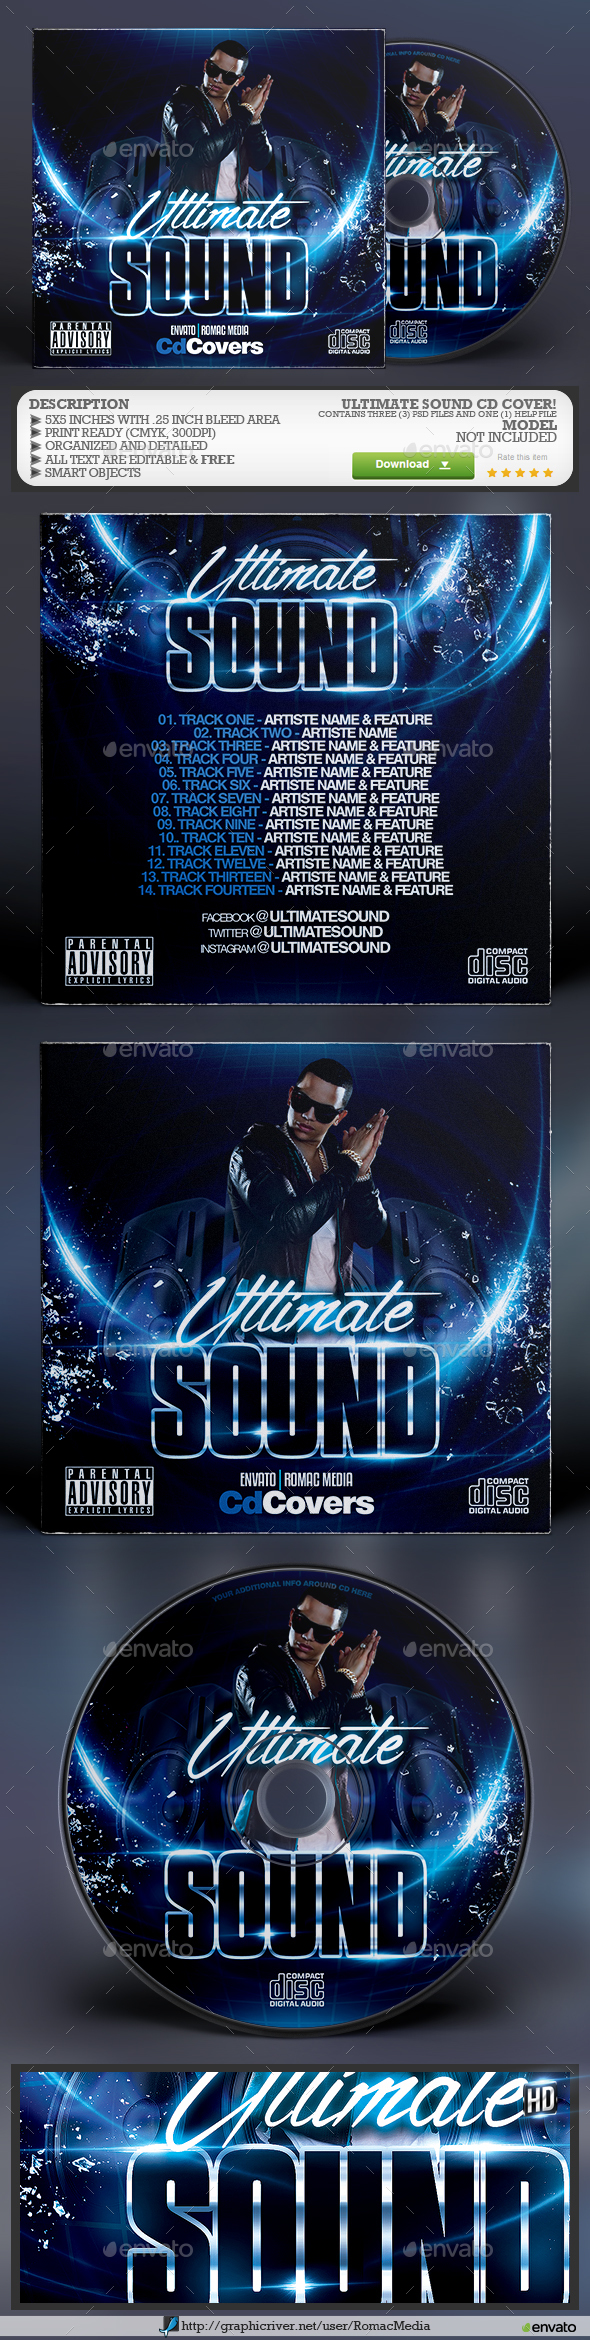 Ultimate Sound CD Cover - CD & DVD Artwork Print Templates